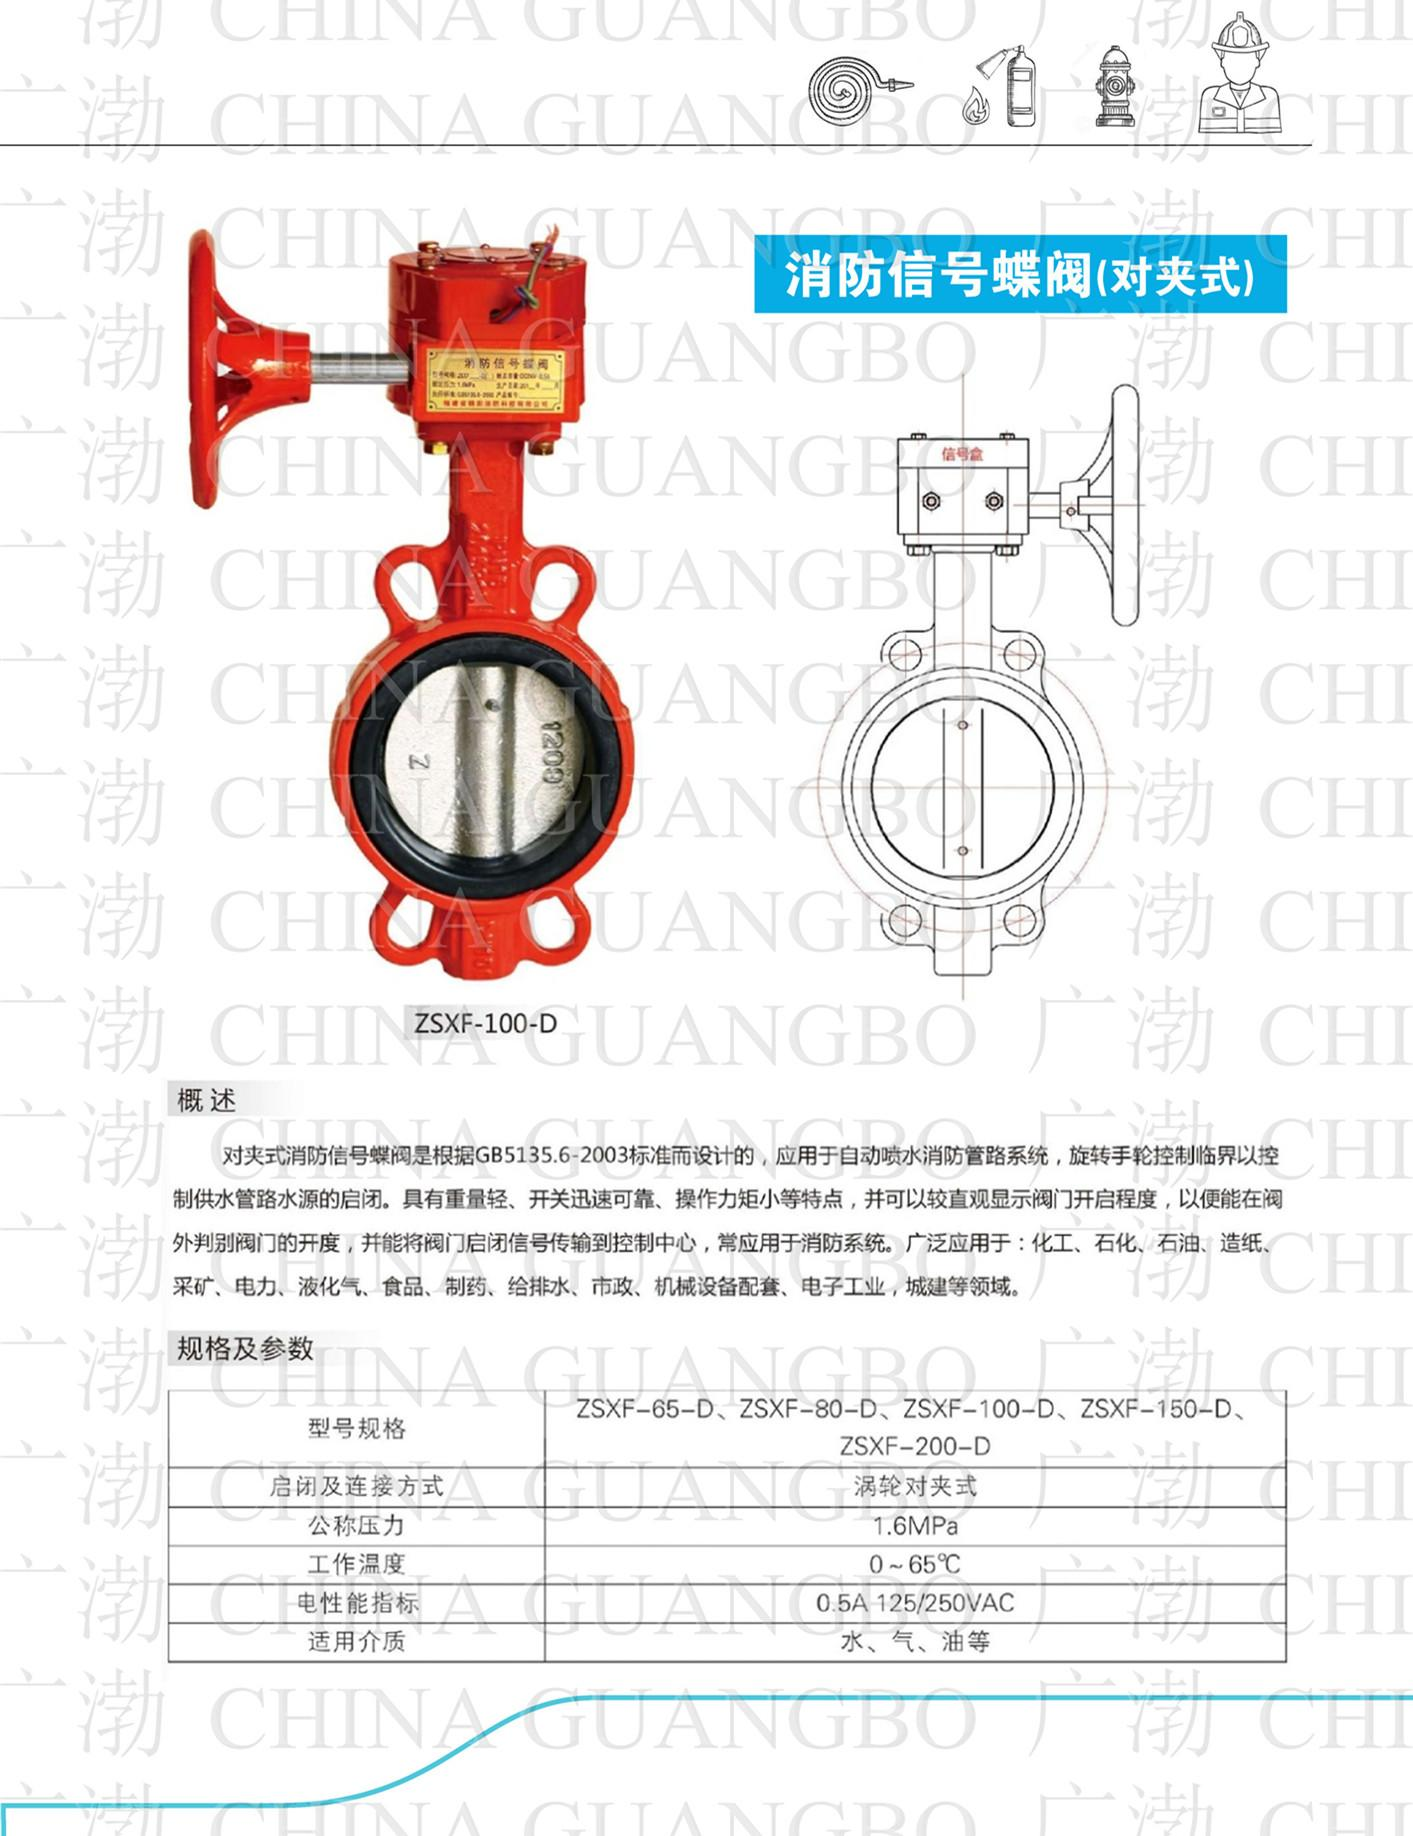 Fire Butterfly Valve Wafer Type Groove Type China Fujian Gunagbo Brand 2